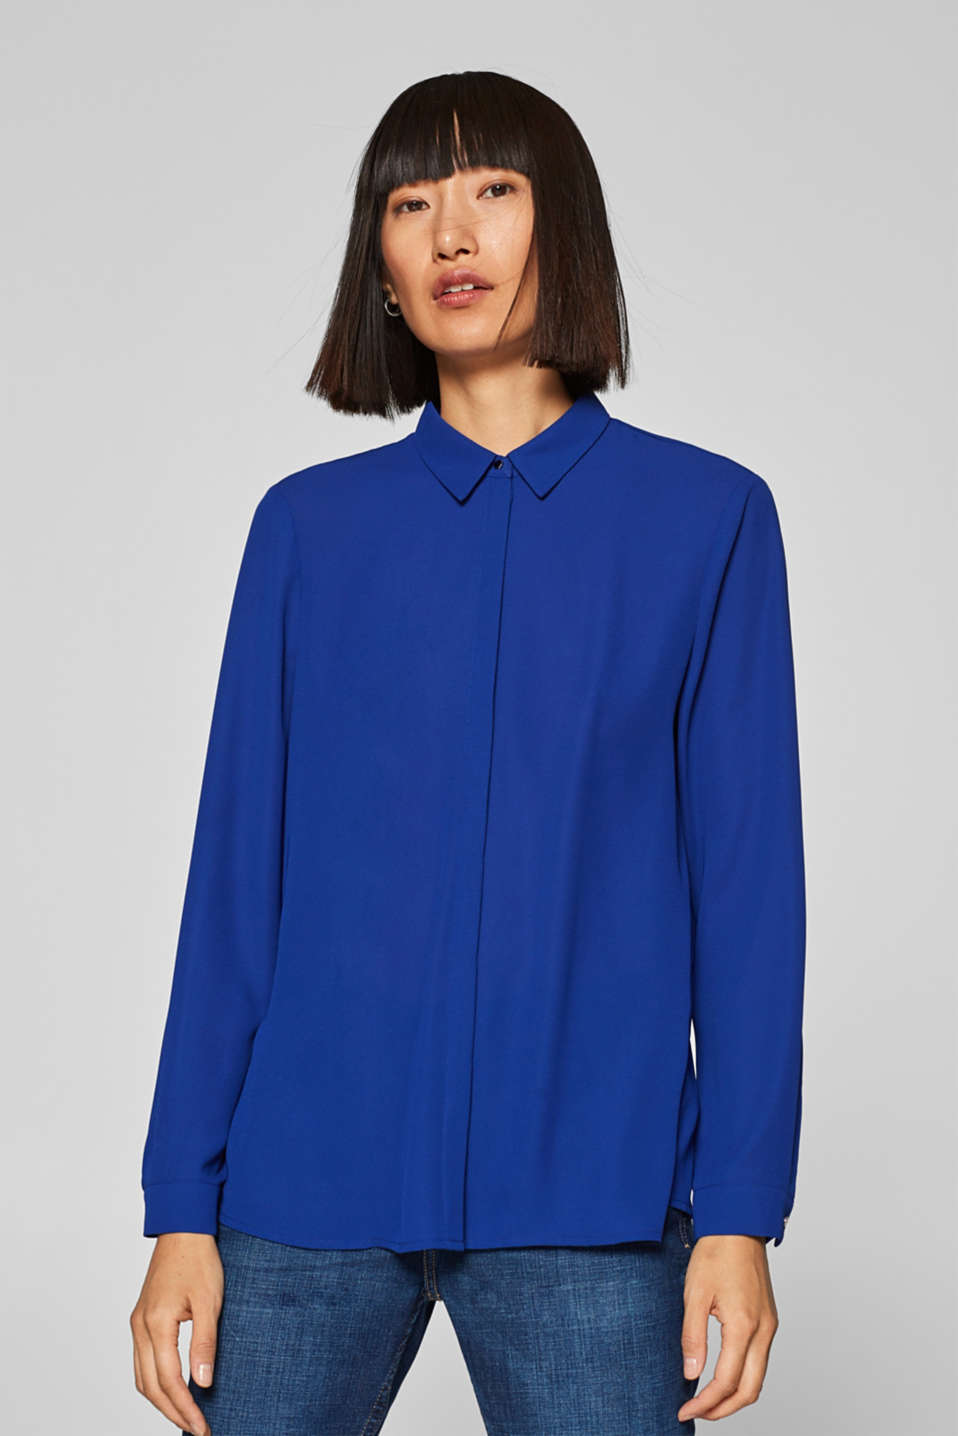 Esprit - Chiffon blouse with back pleats